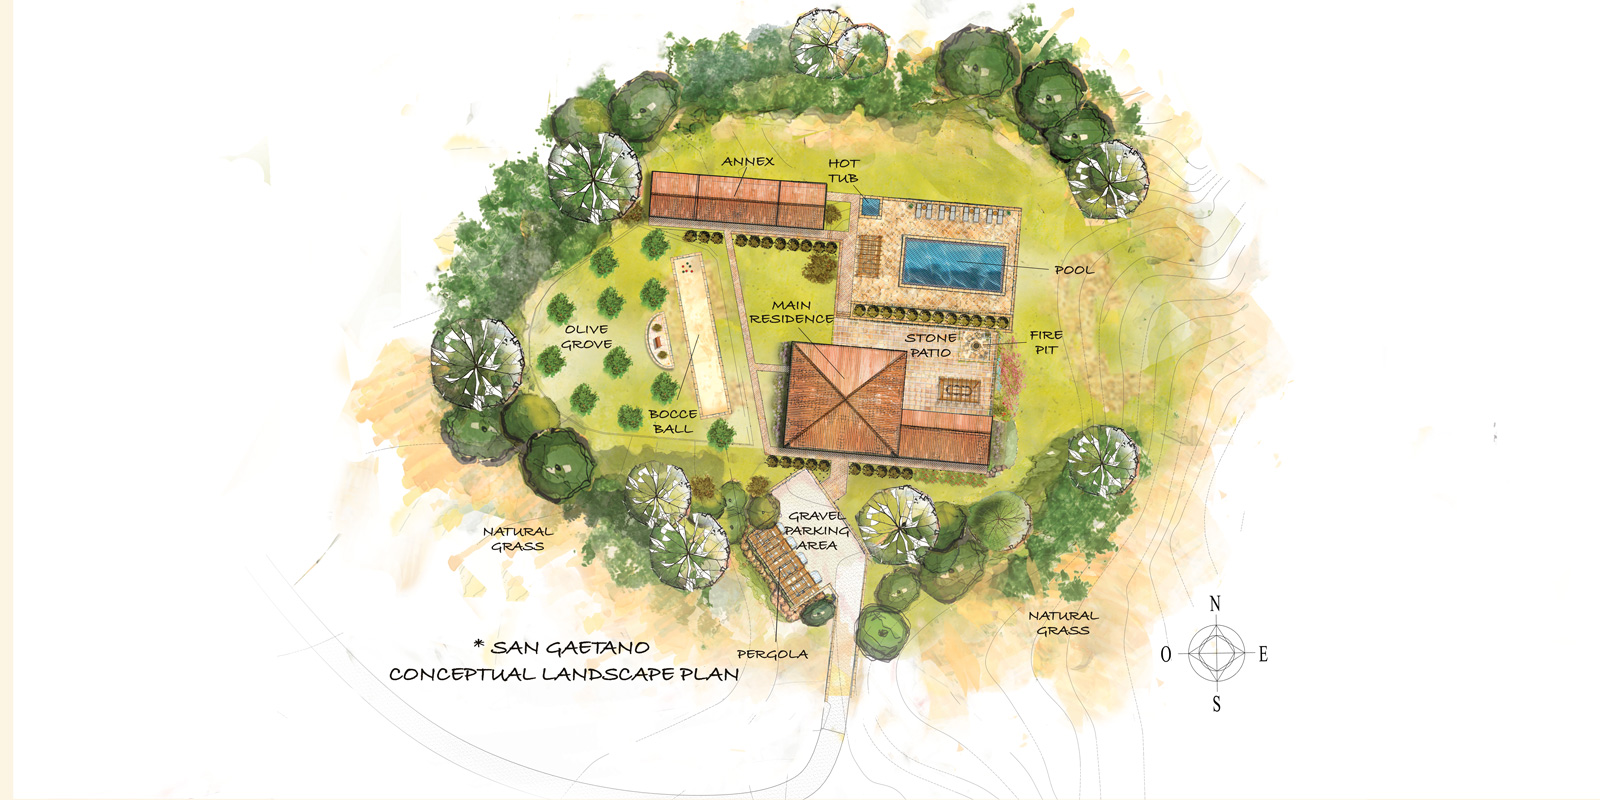 San Gaetano Conceptual Estate Plan